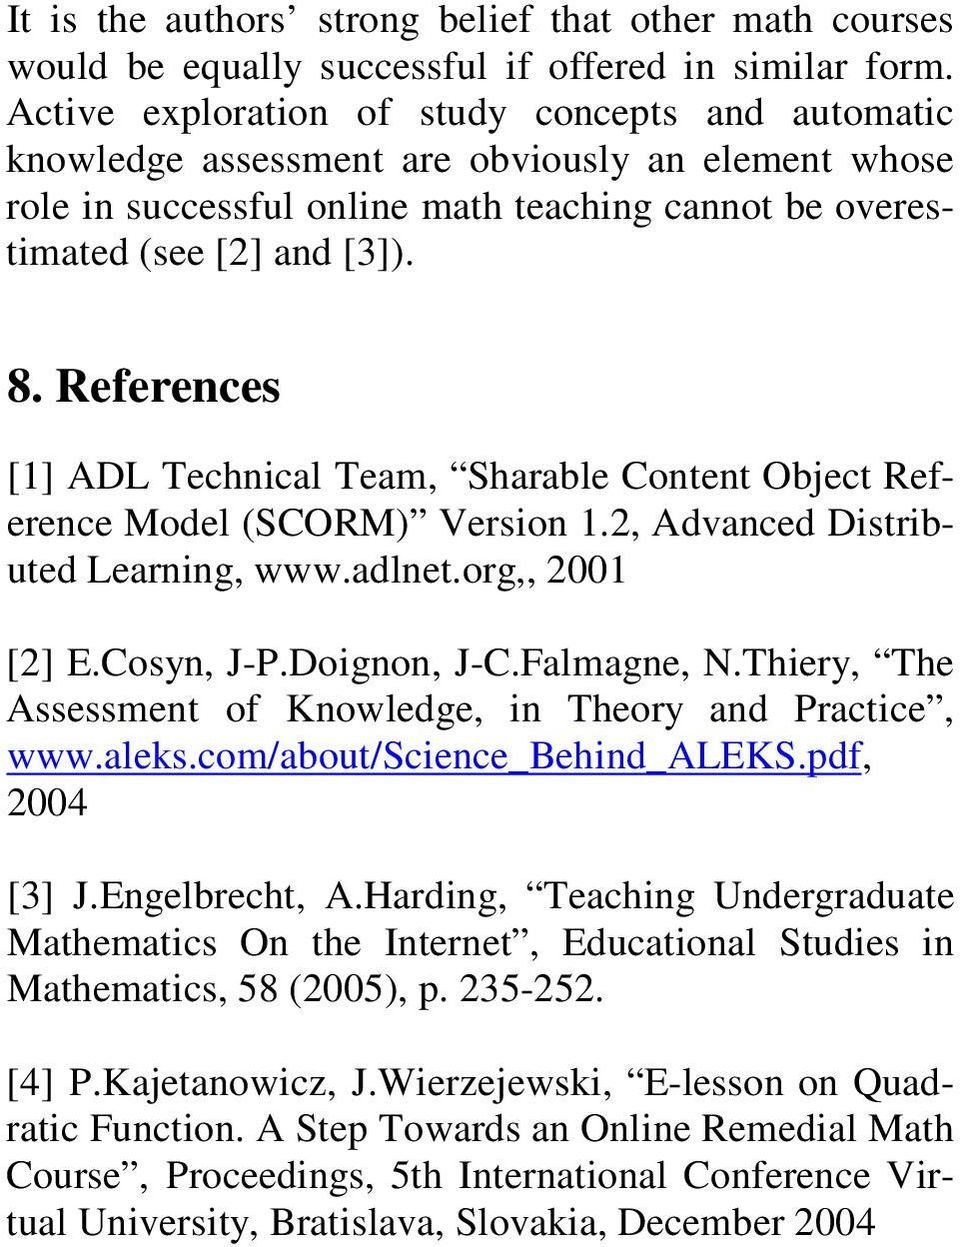 References [1] ADL Technical Team, Sharable Content Object Reference Model (SCORM) Version 1.2, Advanced Distributed Learning, www.adlnet.org,, 2001 [2] E.Cosyn, J-P.Doignon, J-C.Falmagne, N.